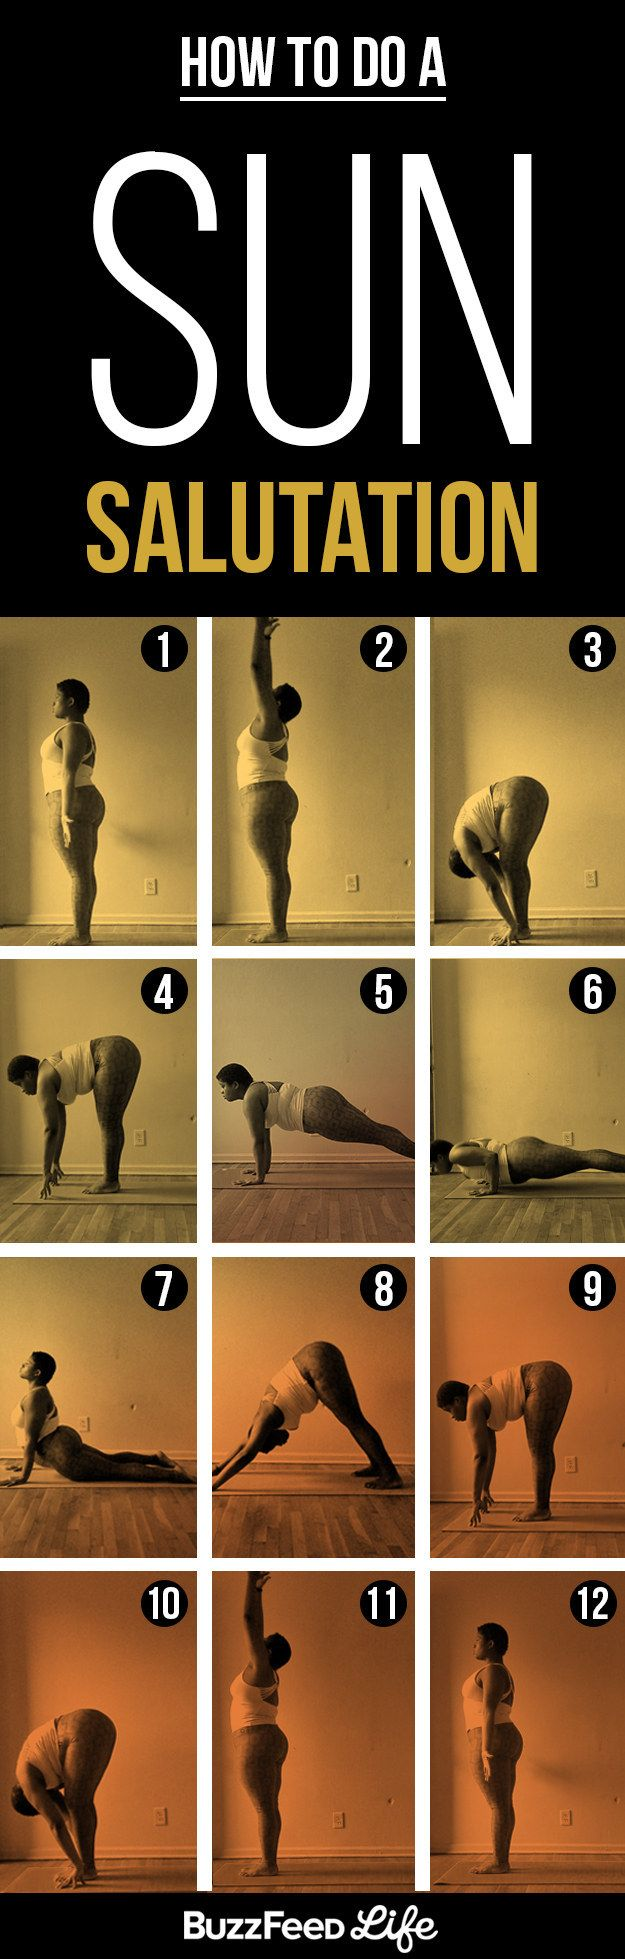 Here's How To Actually Do A Sun Salutation #yogaeverydamnday #yogaforeverybody